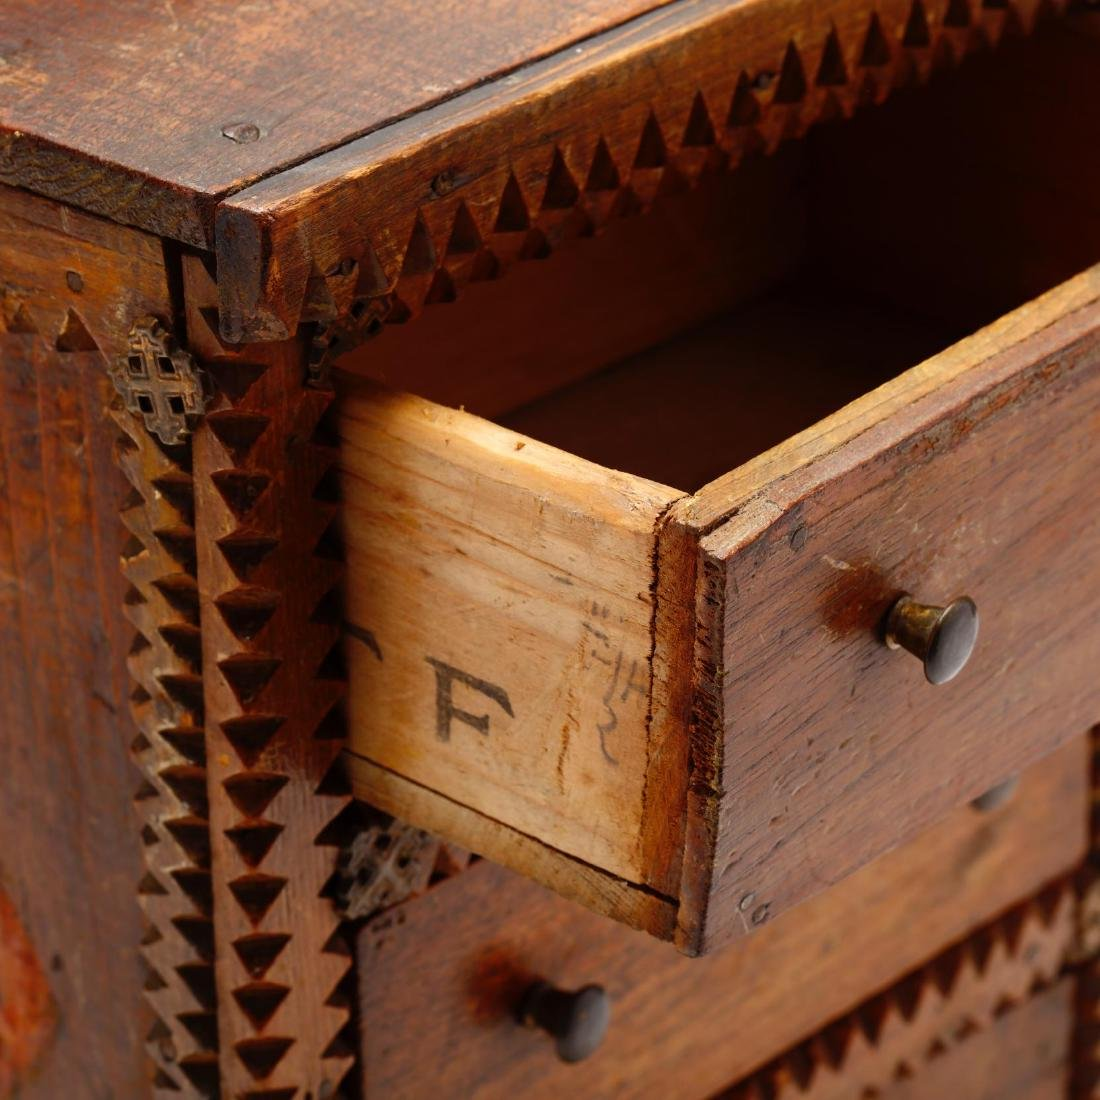 Two Vintage Tramp Art Miniature Chests of Drawers - 9